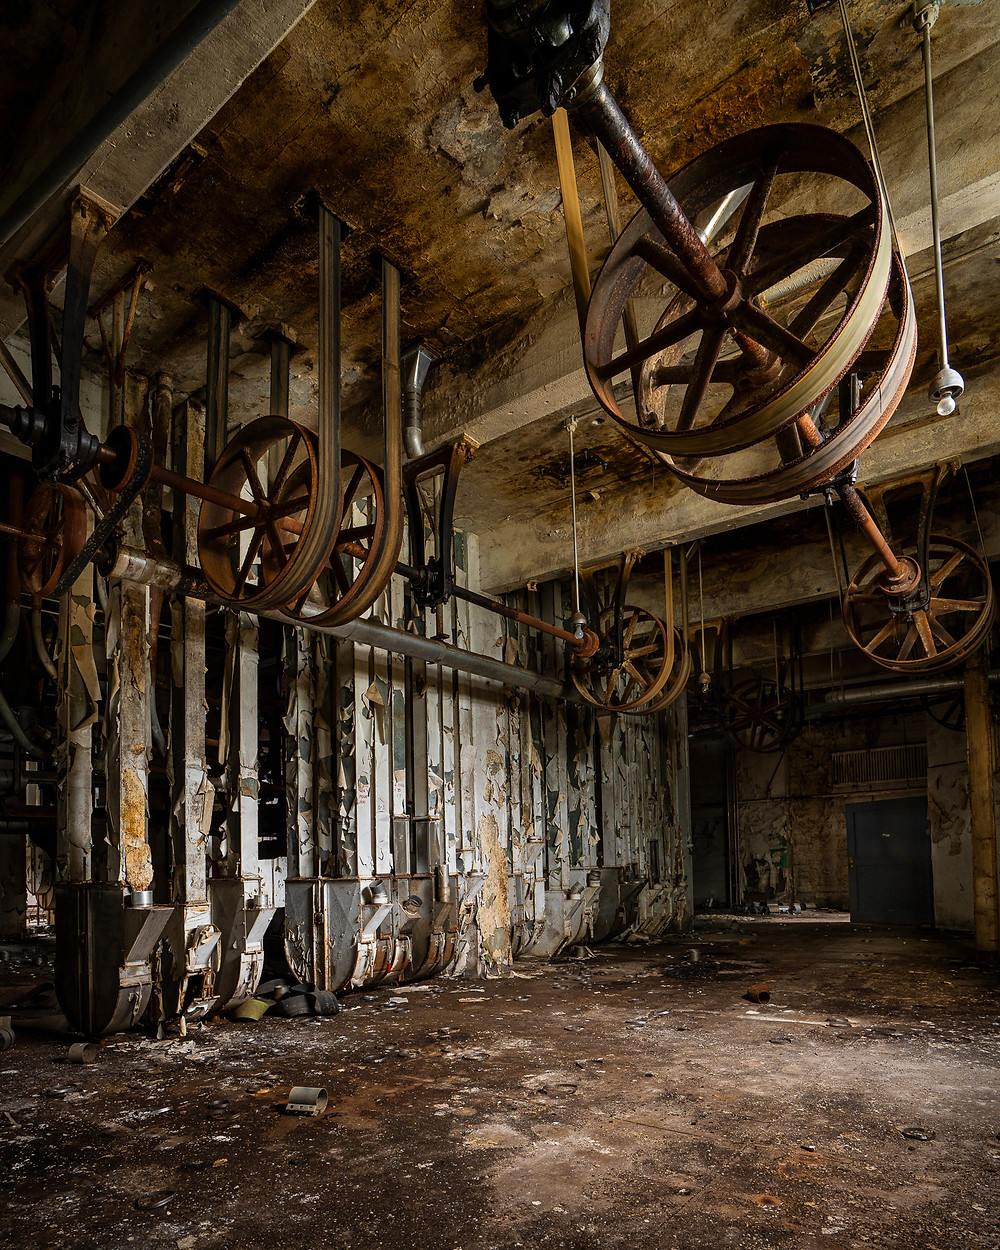 The abandon Lake & Rail flour mill belts and wheels that powered the plant